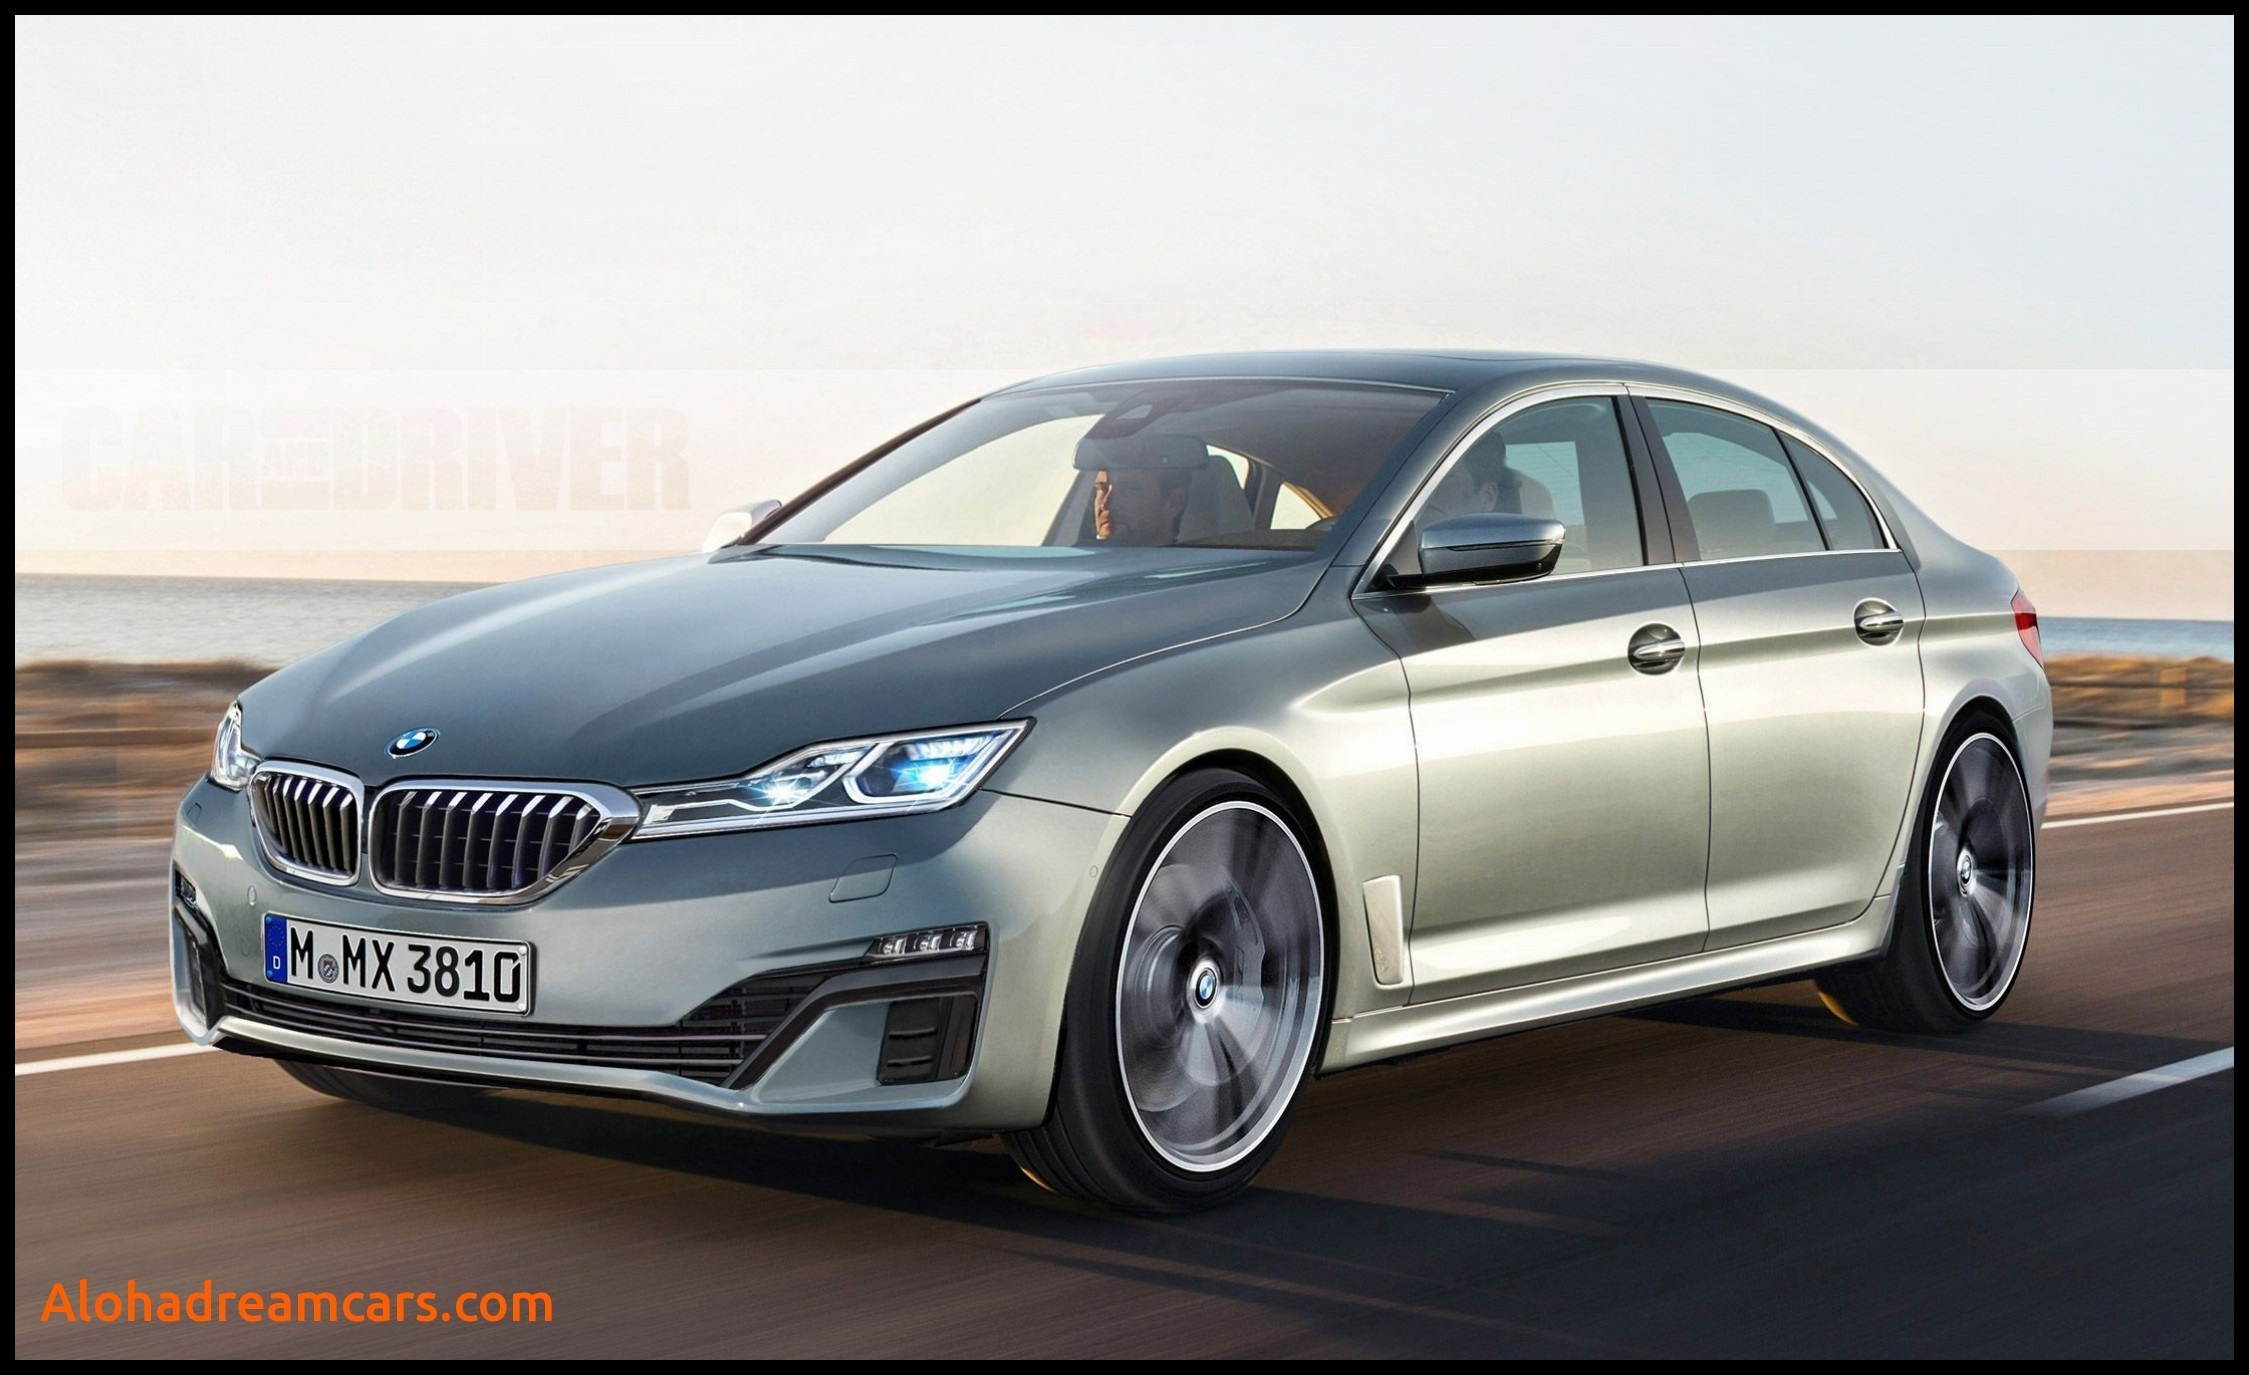 Bmw Serie 1 2018 Review Specs and Release Date 2019 S4 Audi Price Bmw 2019